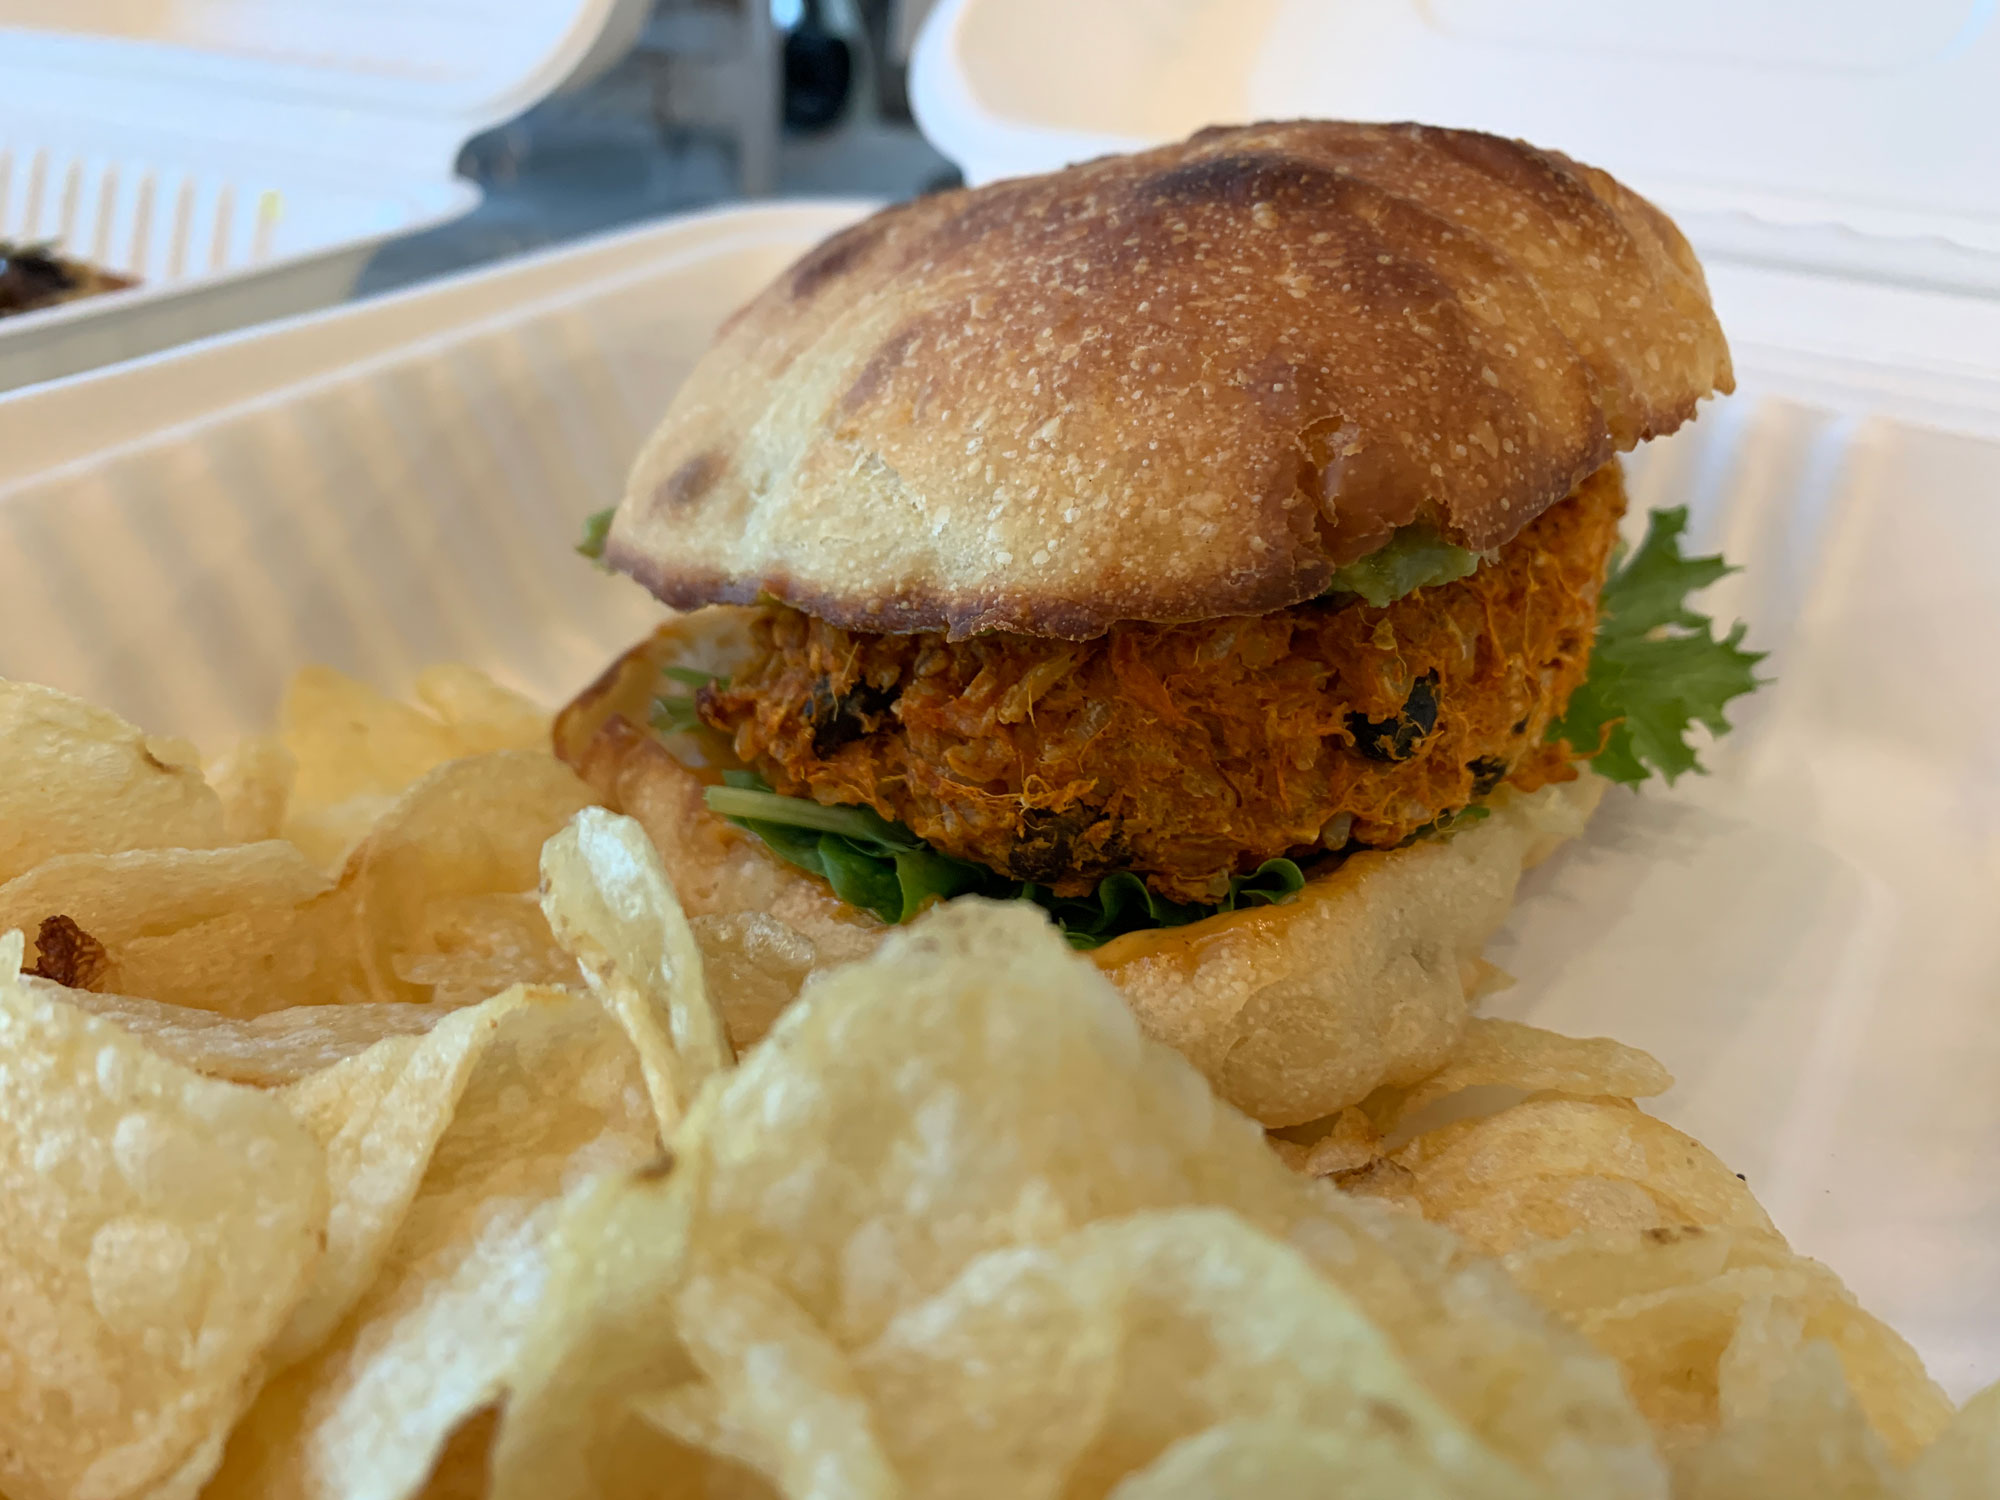 A vegan black bean and sweet potato burger with side of chips from Good Life Organics in Reading PA